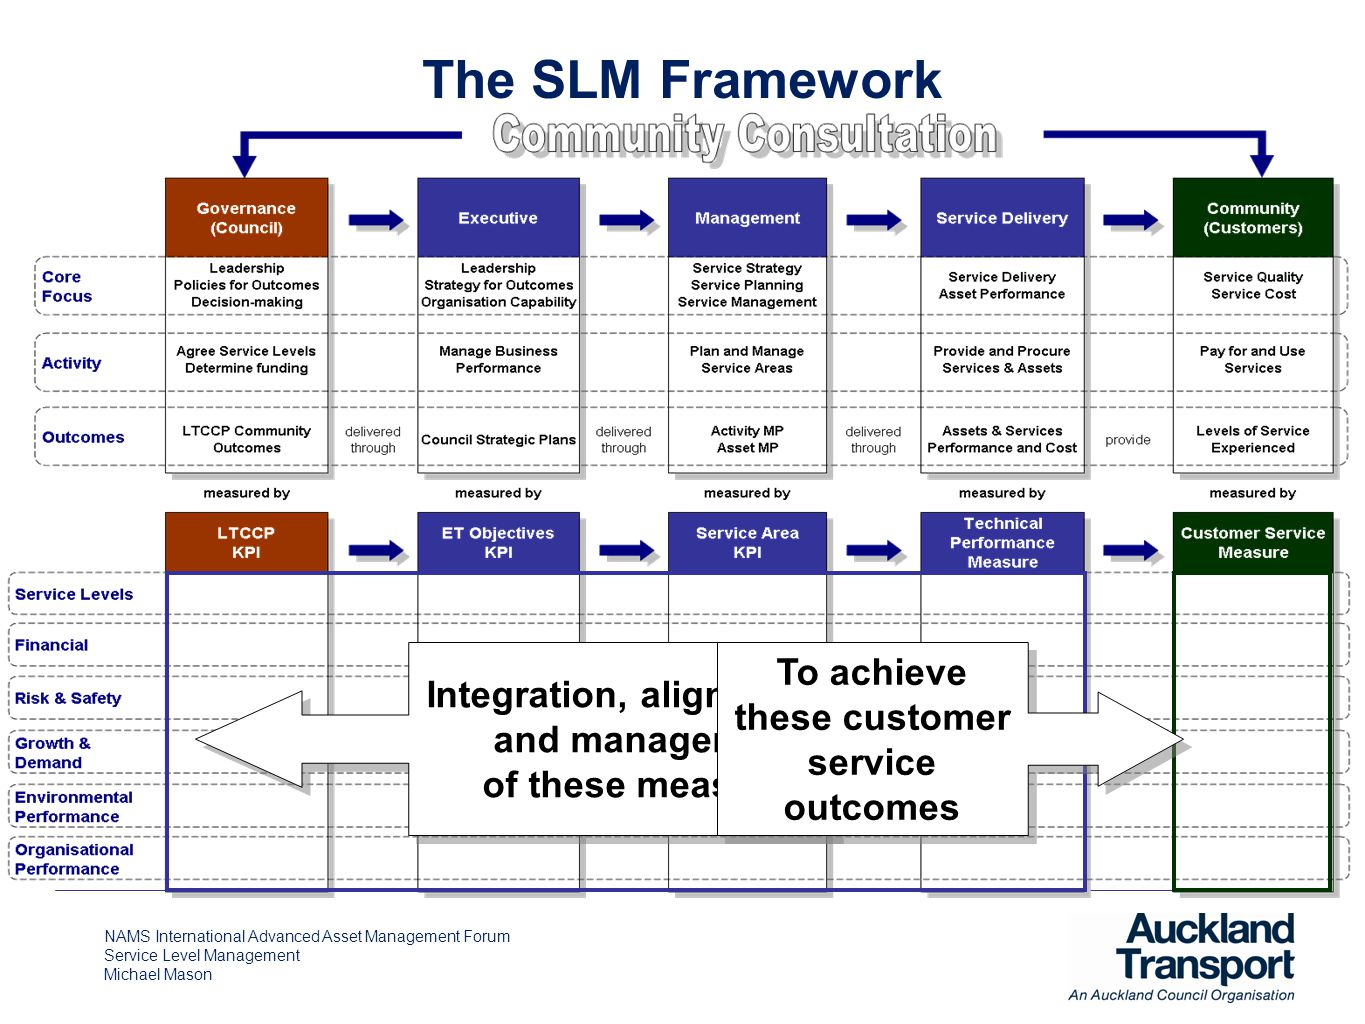 NAMS International Advanced Asset Management Forum Service Level Management Michael Mason The SLM Framework Integration, alignment and management of these measures To achieve these customer service outcomes